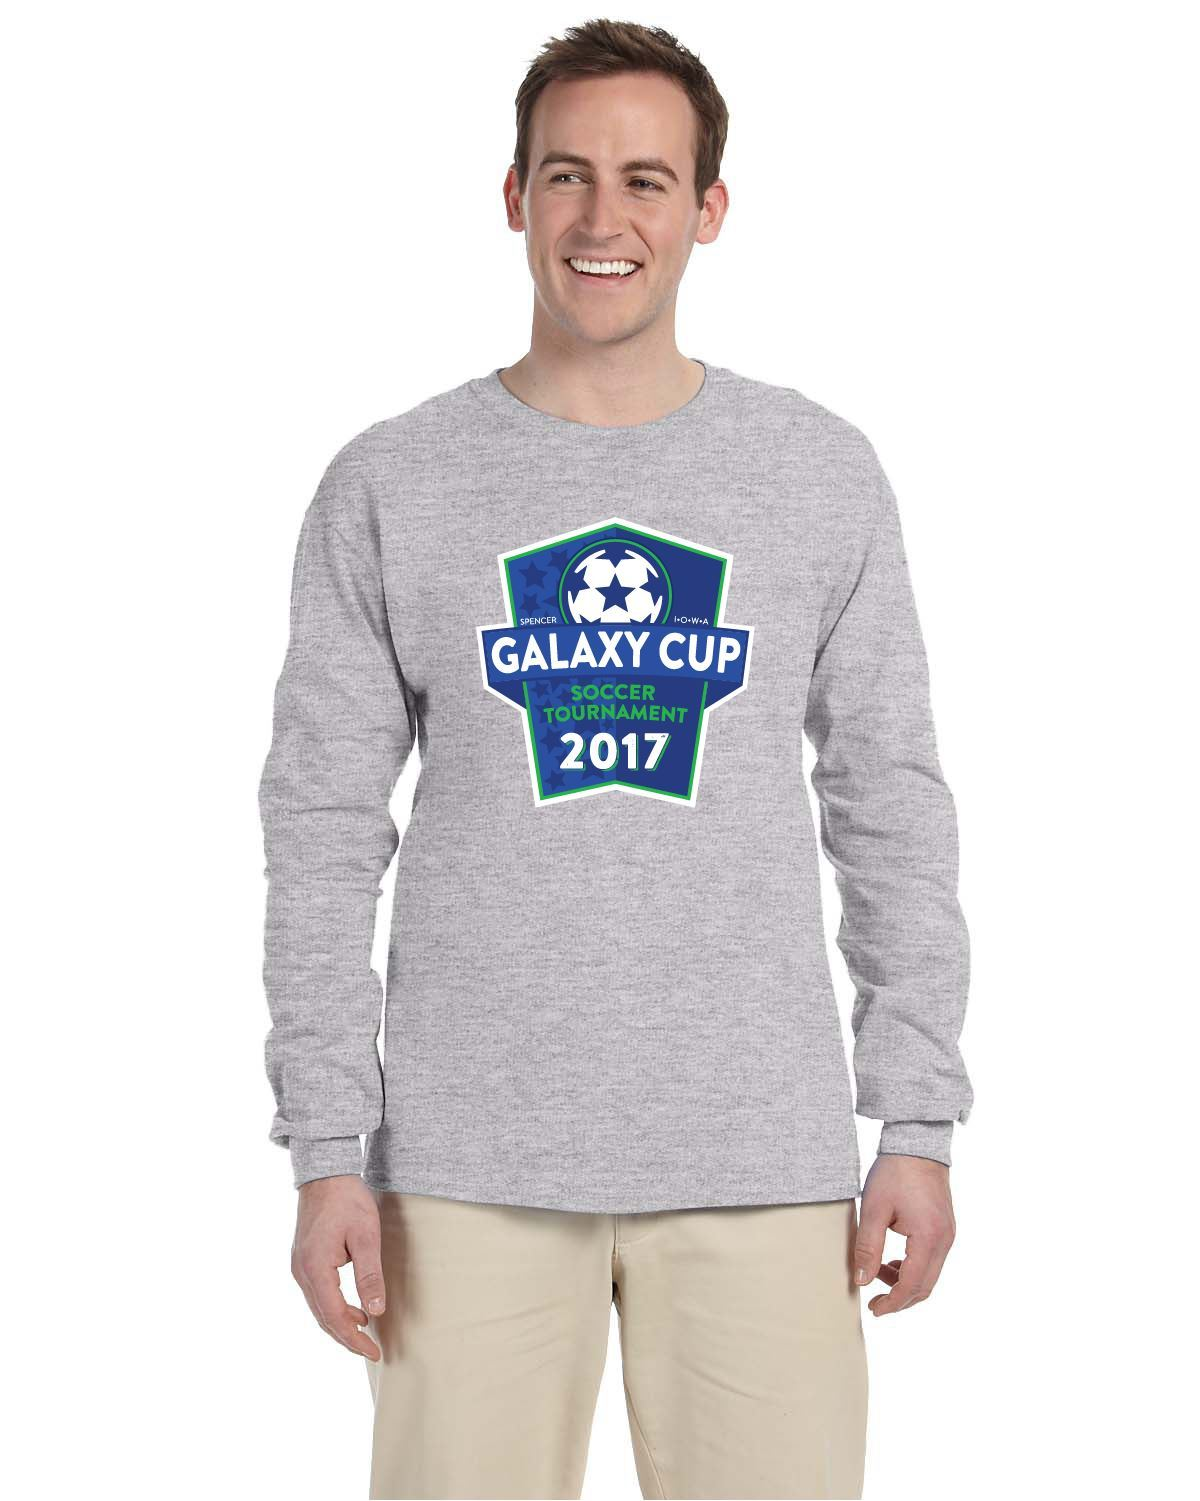 Galaxy Cup Long Sleeve Tee - Sport Grey Goal Kick Soccer Youth Large